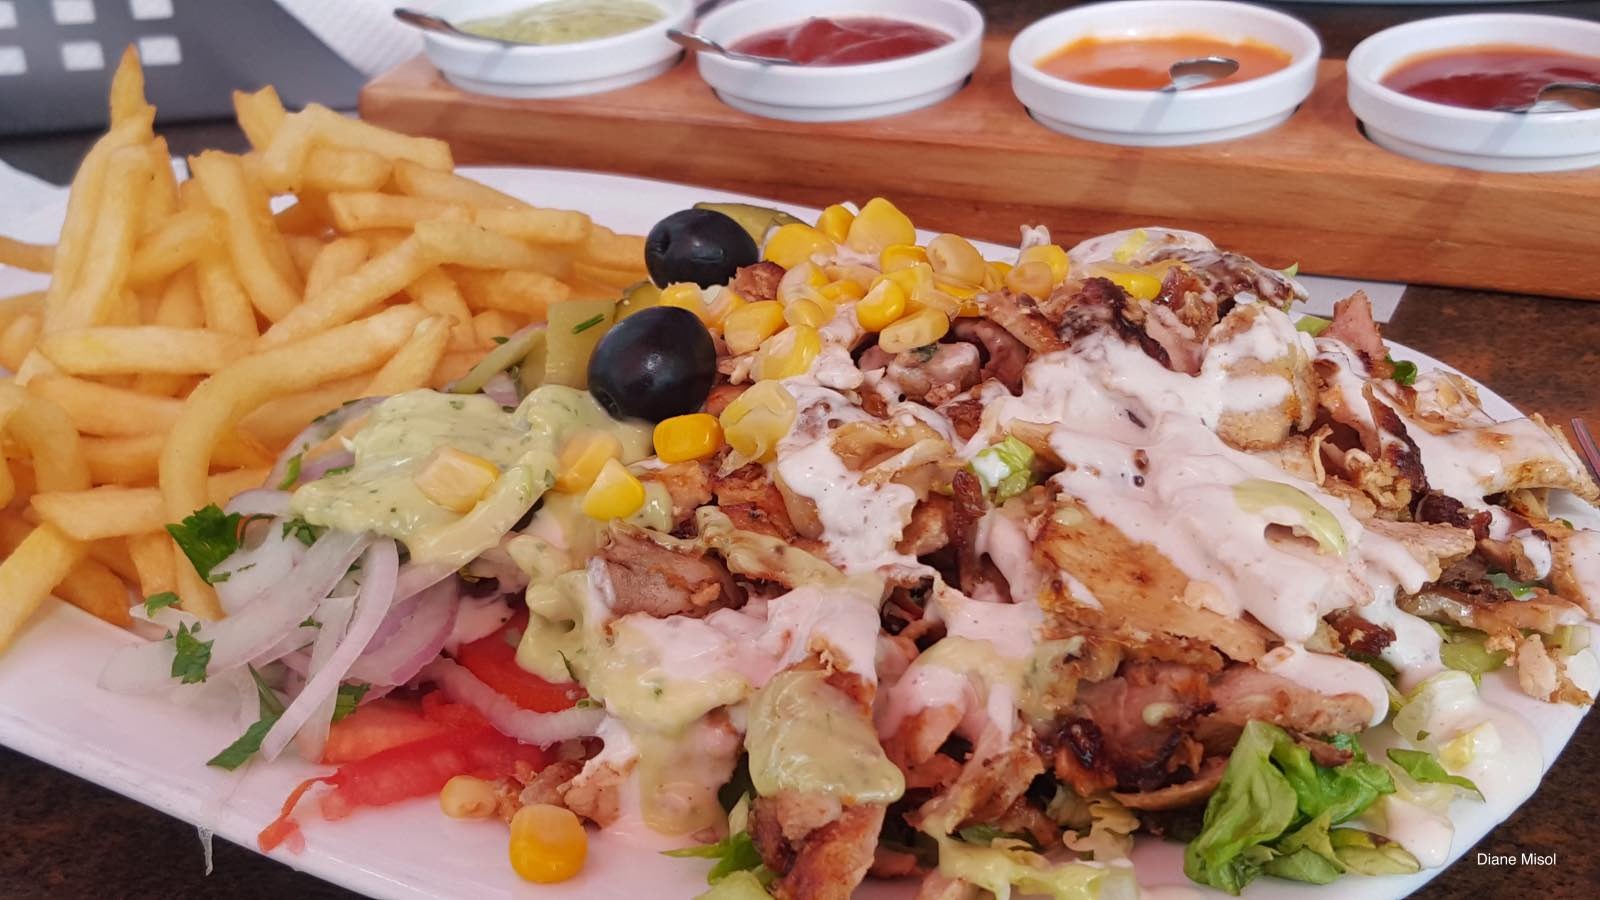 Delicious Shawarma Meal with sauces. Agadir, Morocco